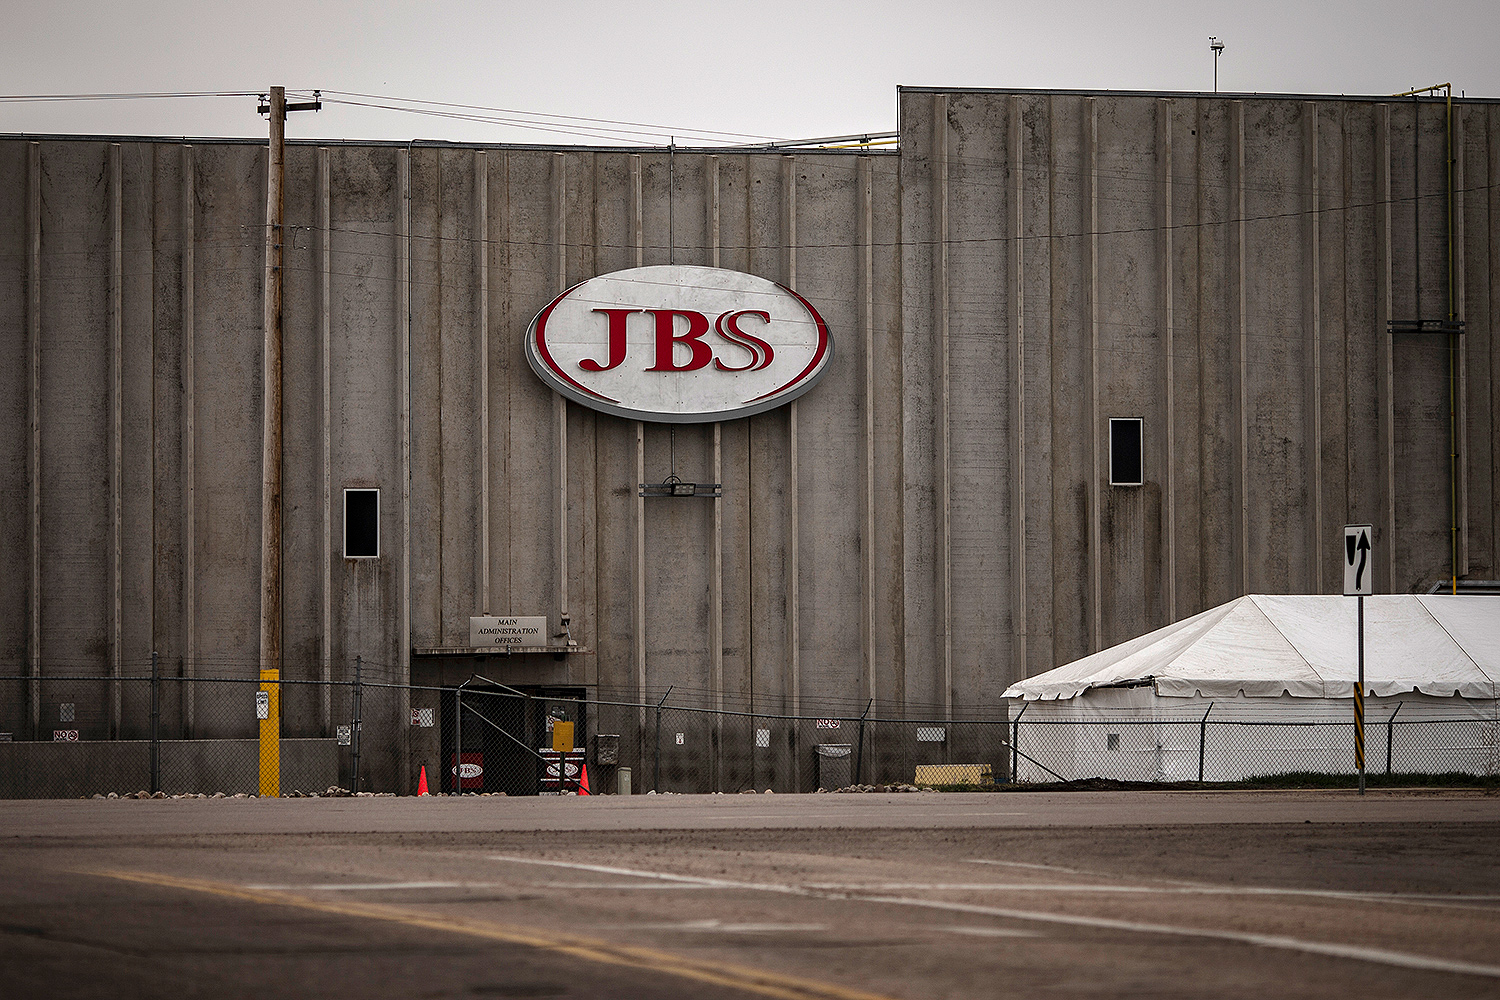 Colorado Meatpacking Plant Worker Dies After Being Hit by Equipment and Falling